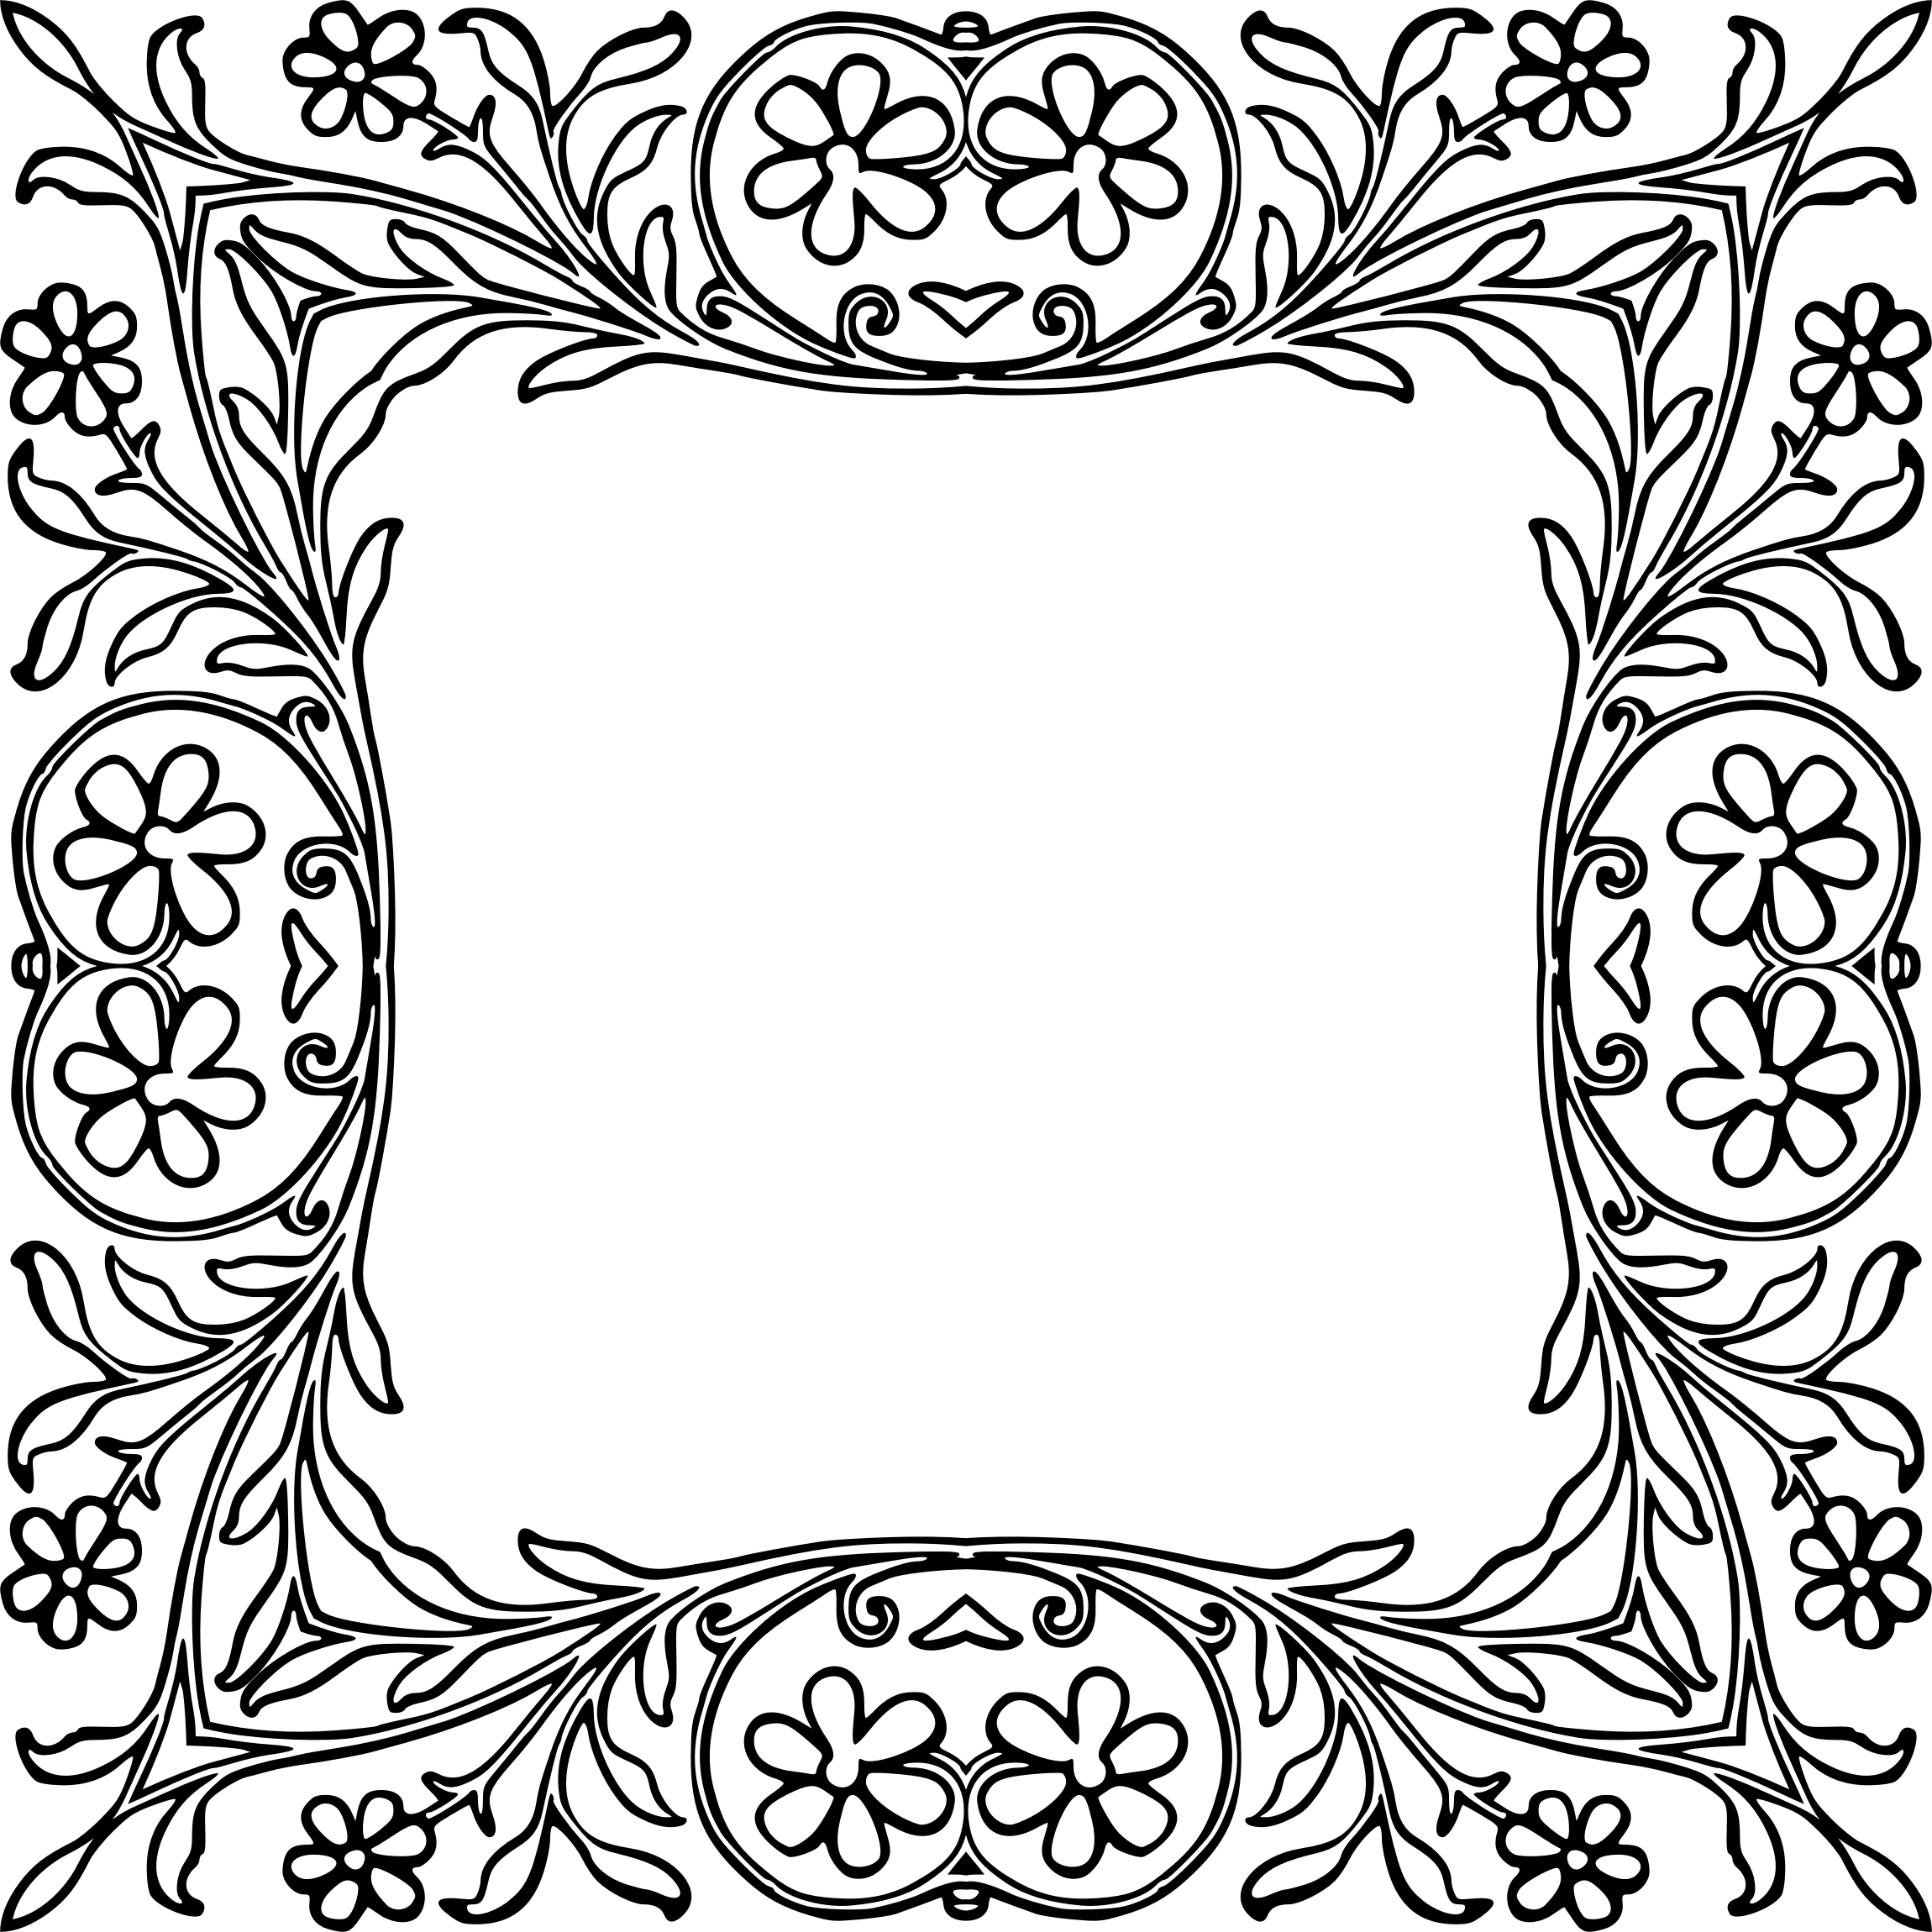 Scroll Frame Clipart